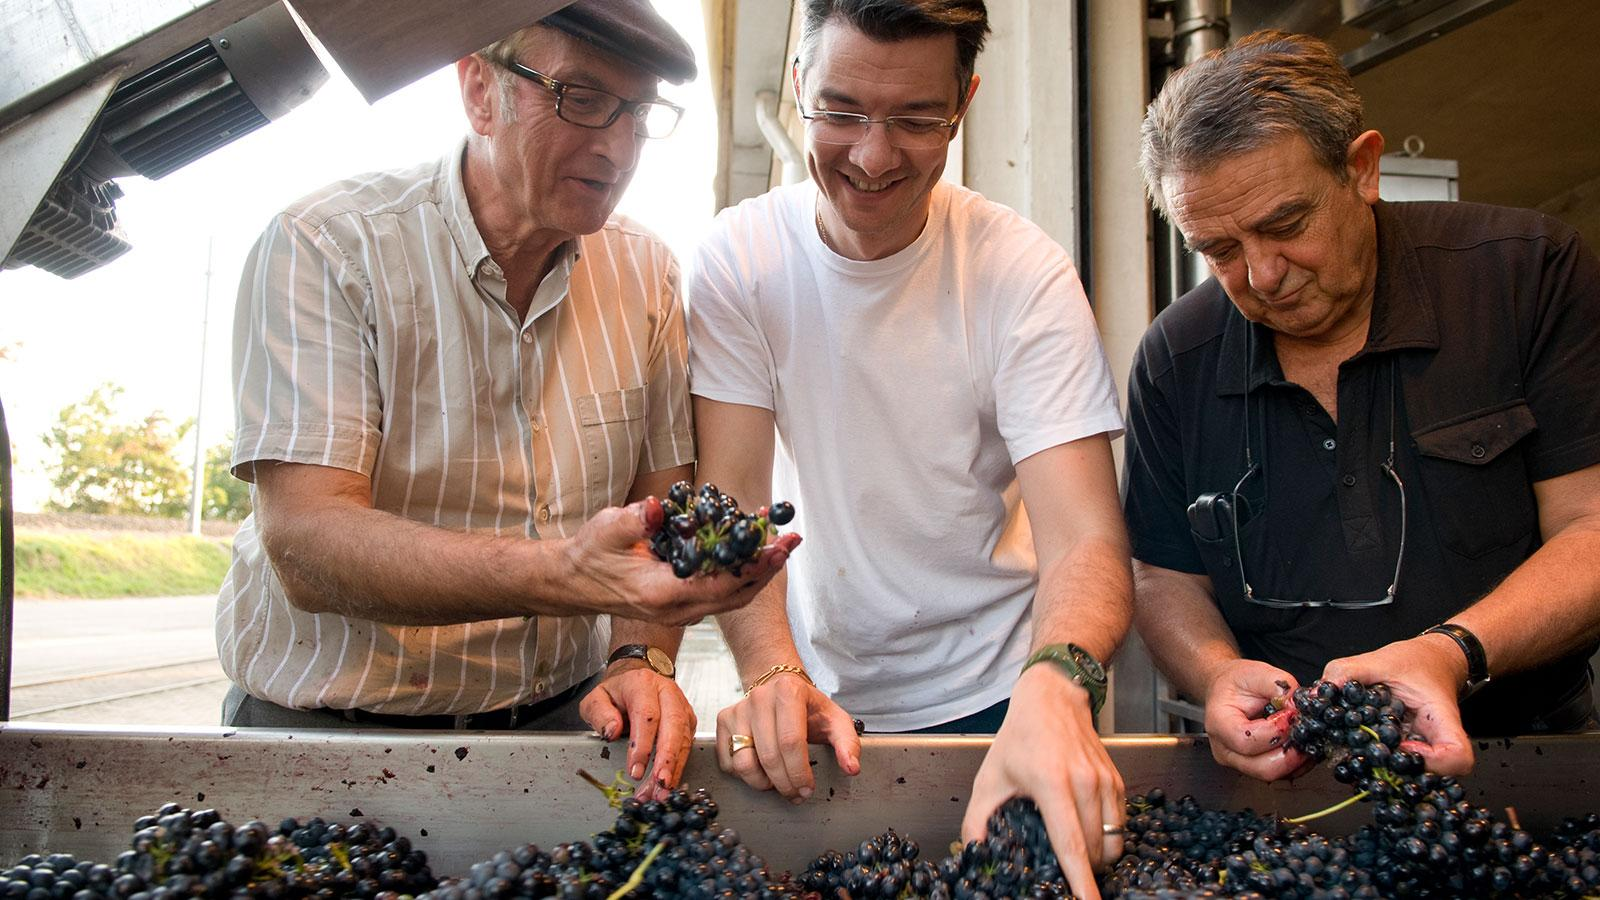 Philippe Guigal (center) sorts grapes with his father, Marcel (left).